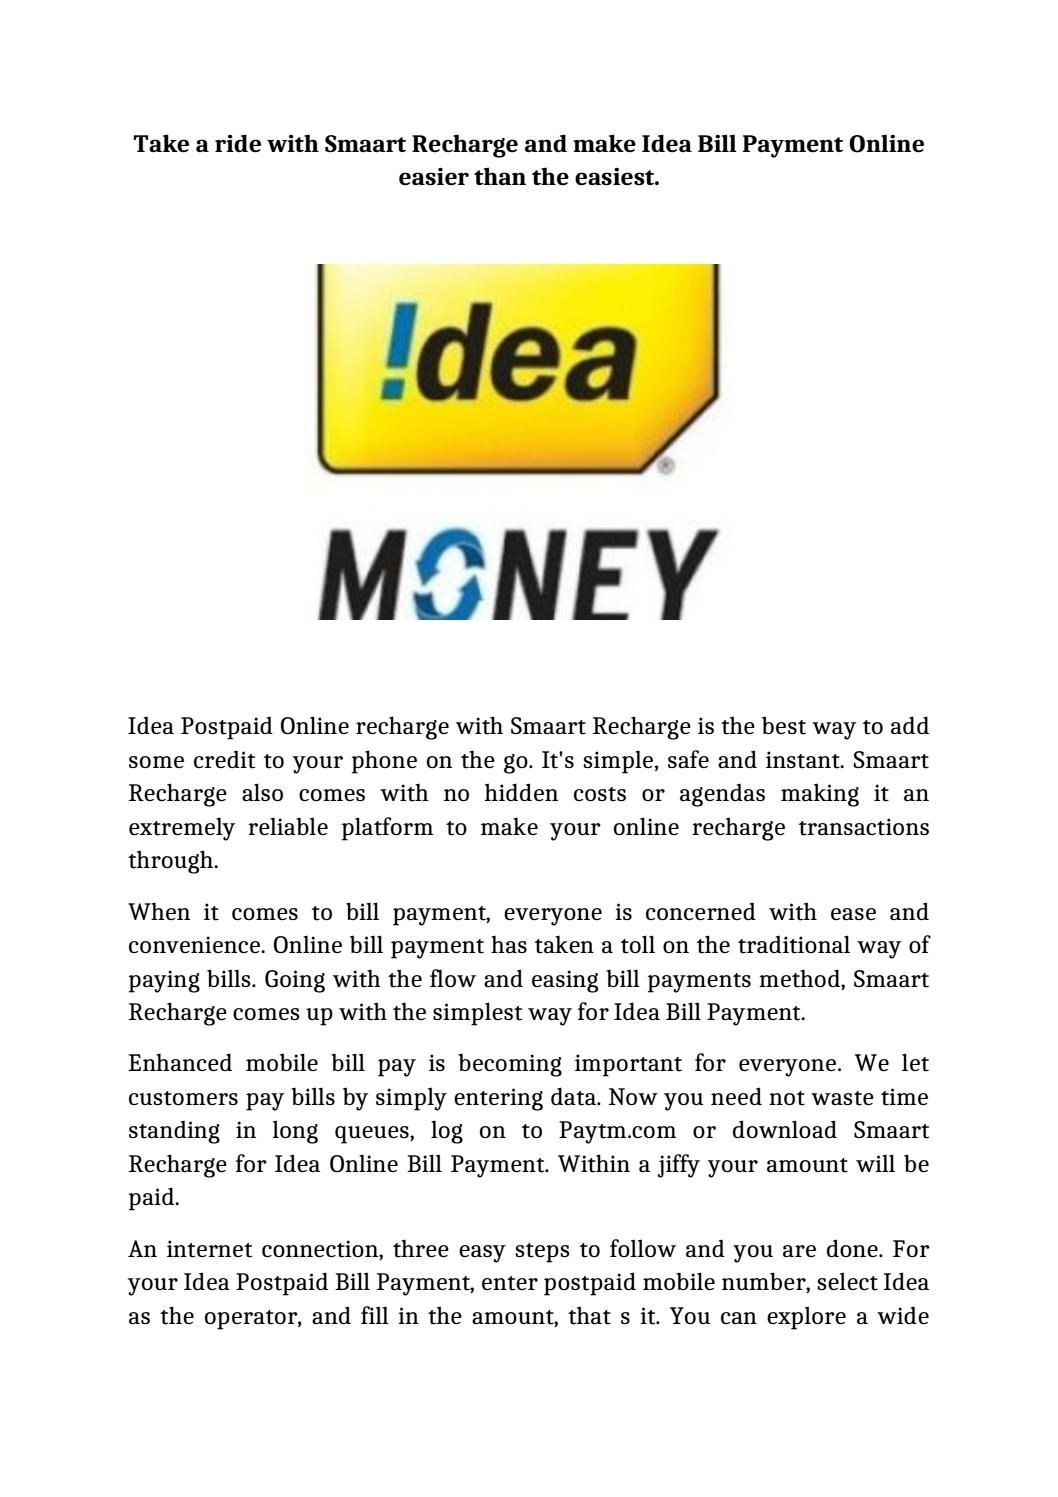 10 Fantastic Idea Postpaid Bill Payment Online take a ride with smaart recharge and make idea bill payment online 2020